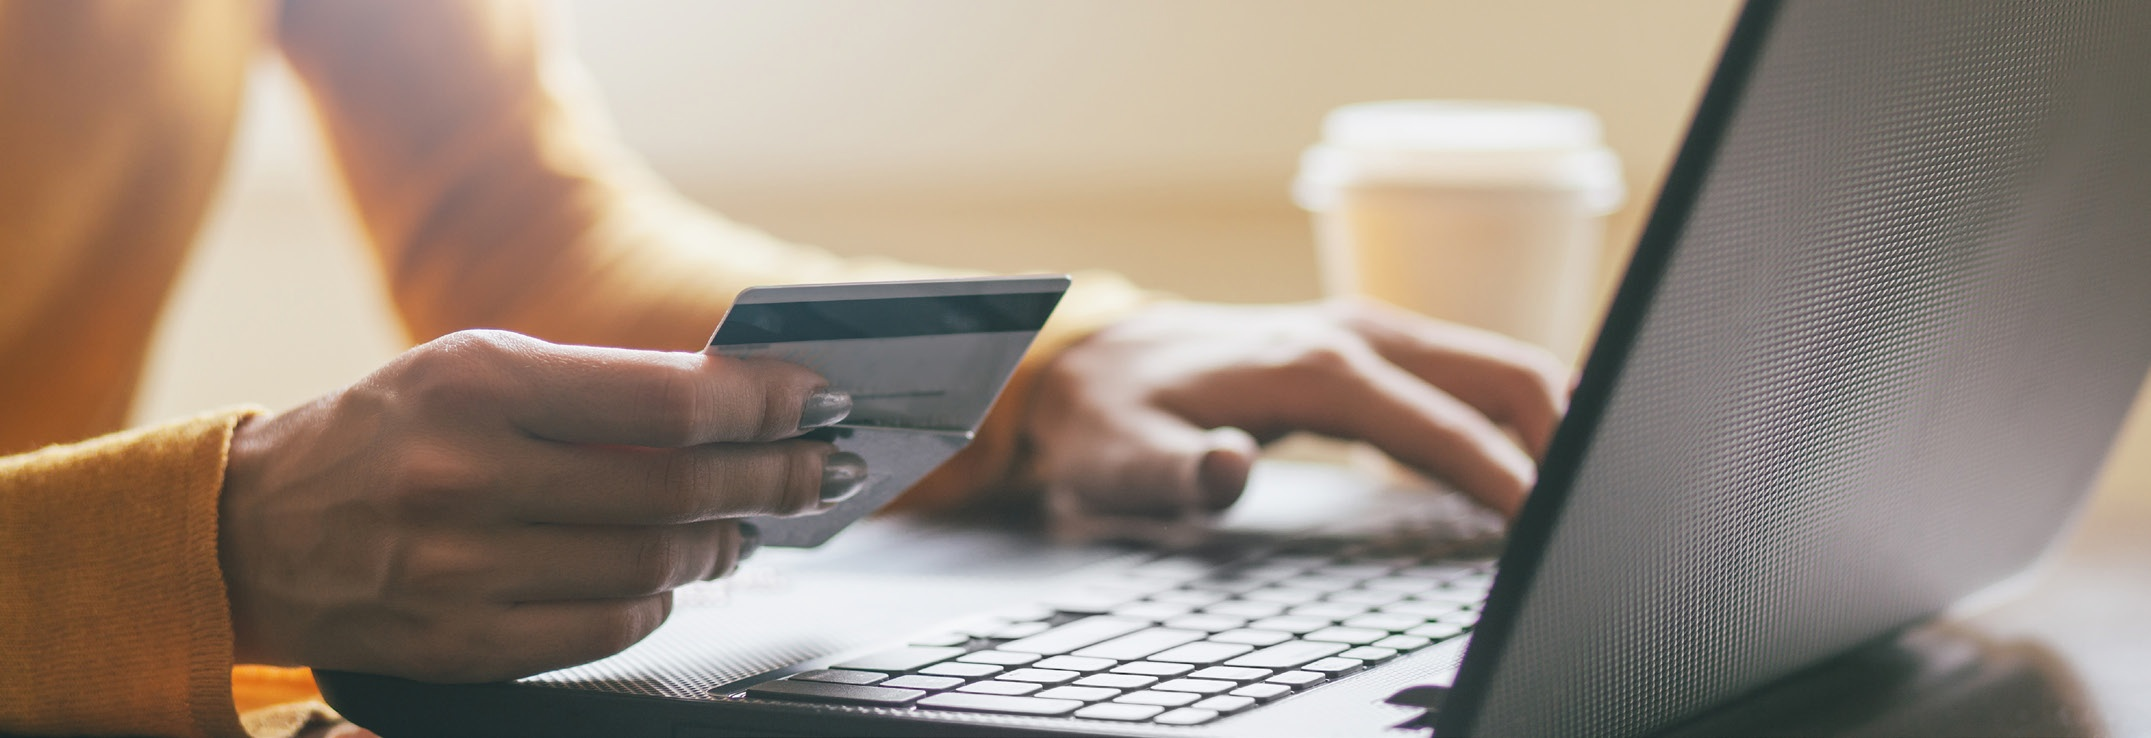 Photo of female using credit card to make a purchase online